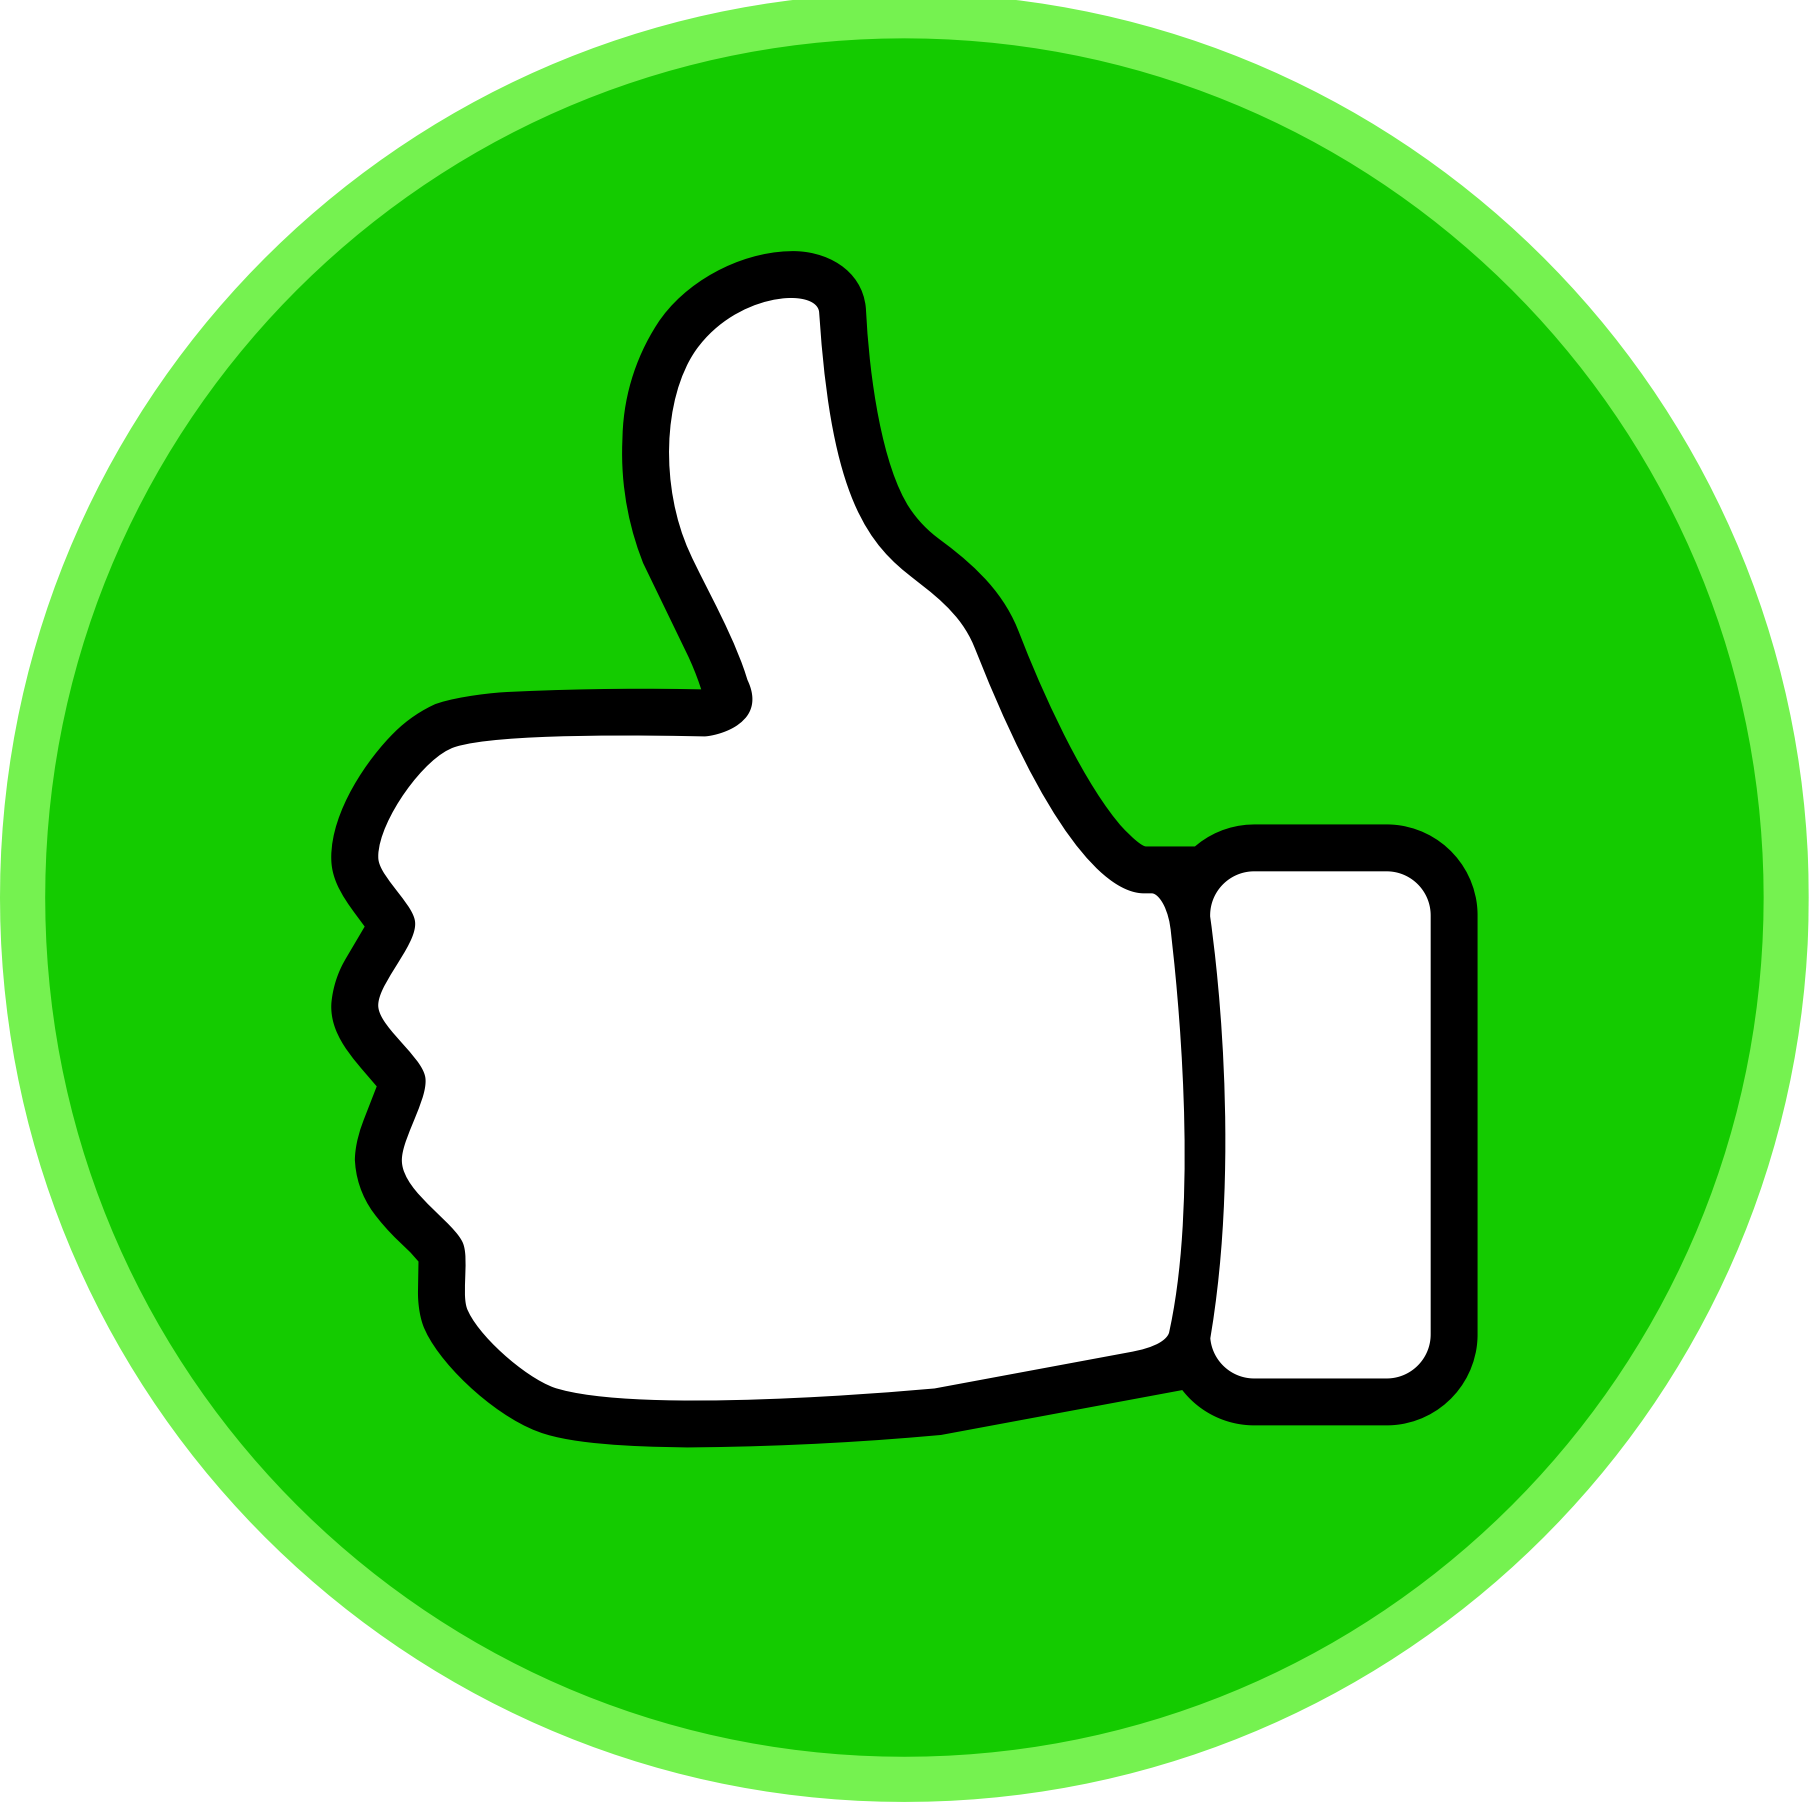 2 thumbs up clipart png free download Thumbs up clipart 2 - Clipartix png free download